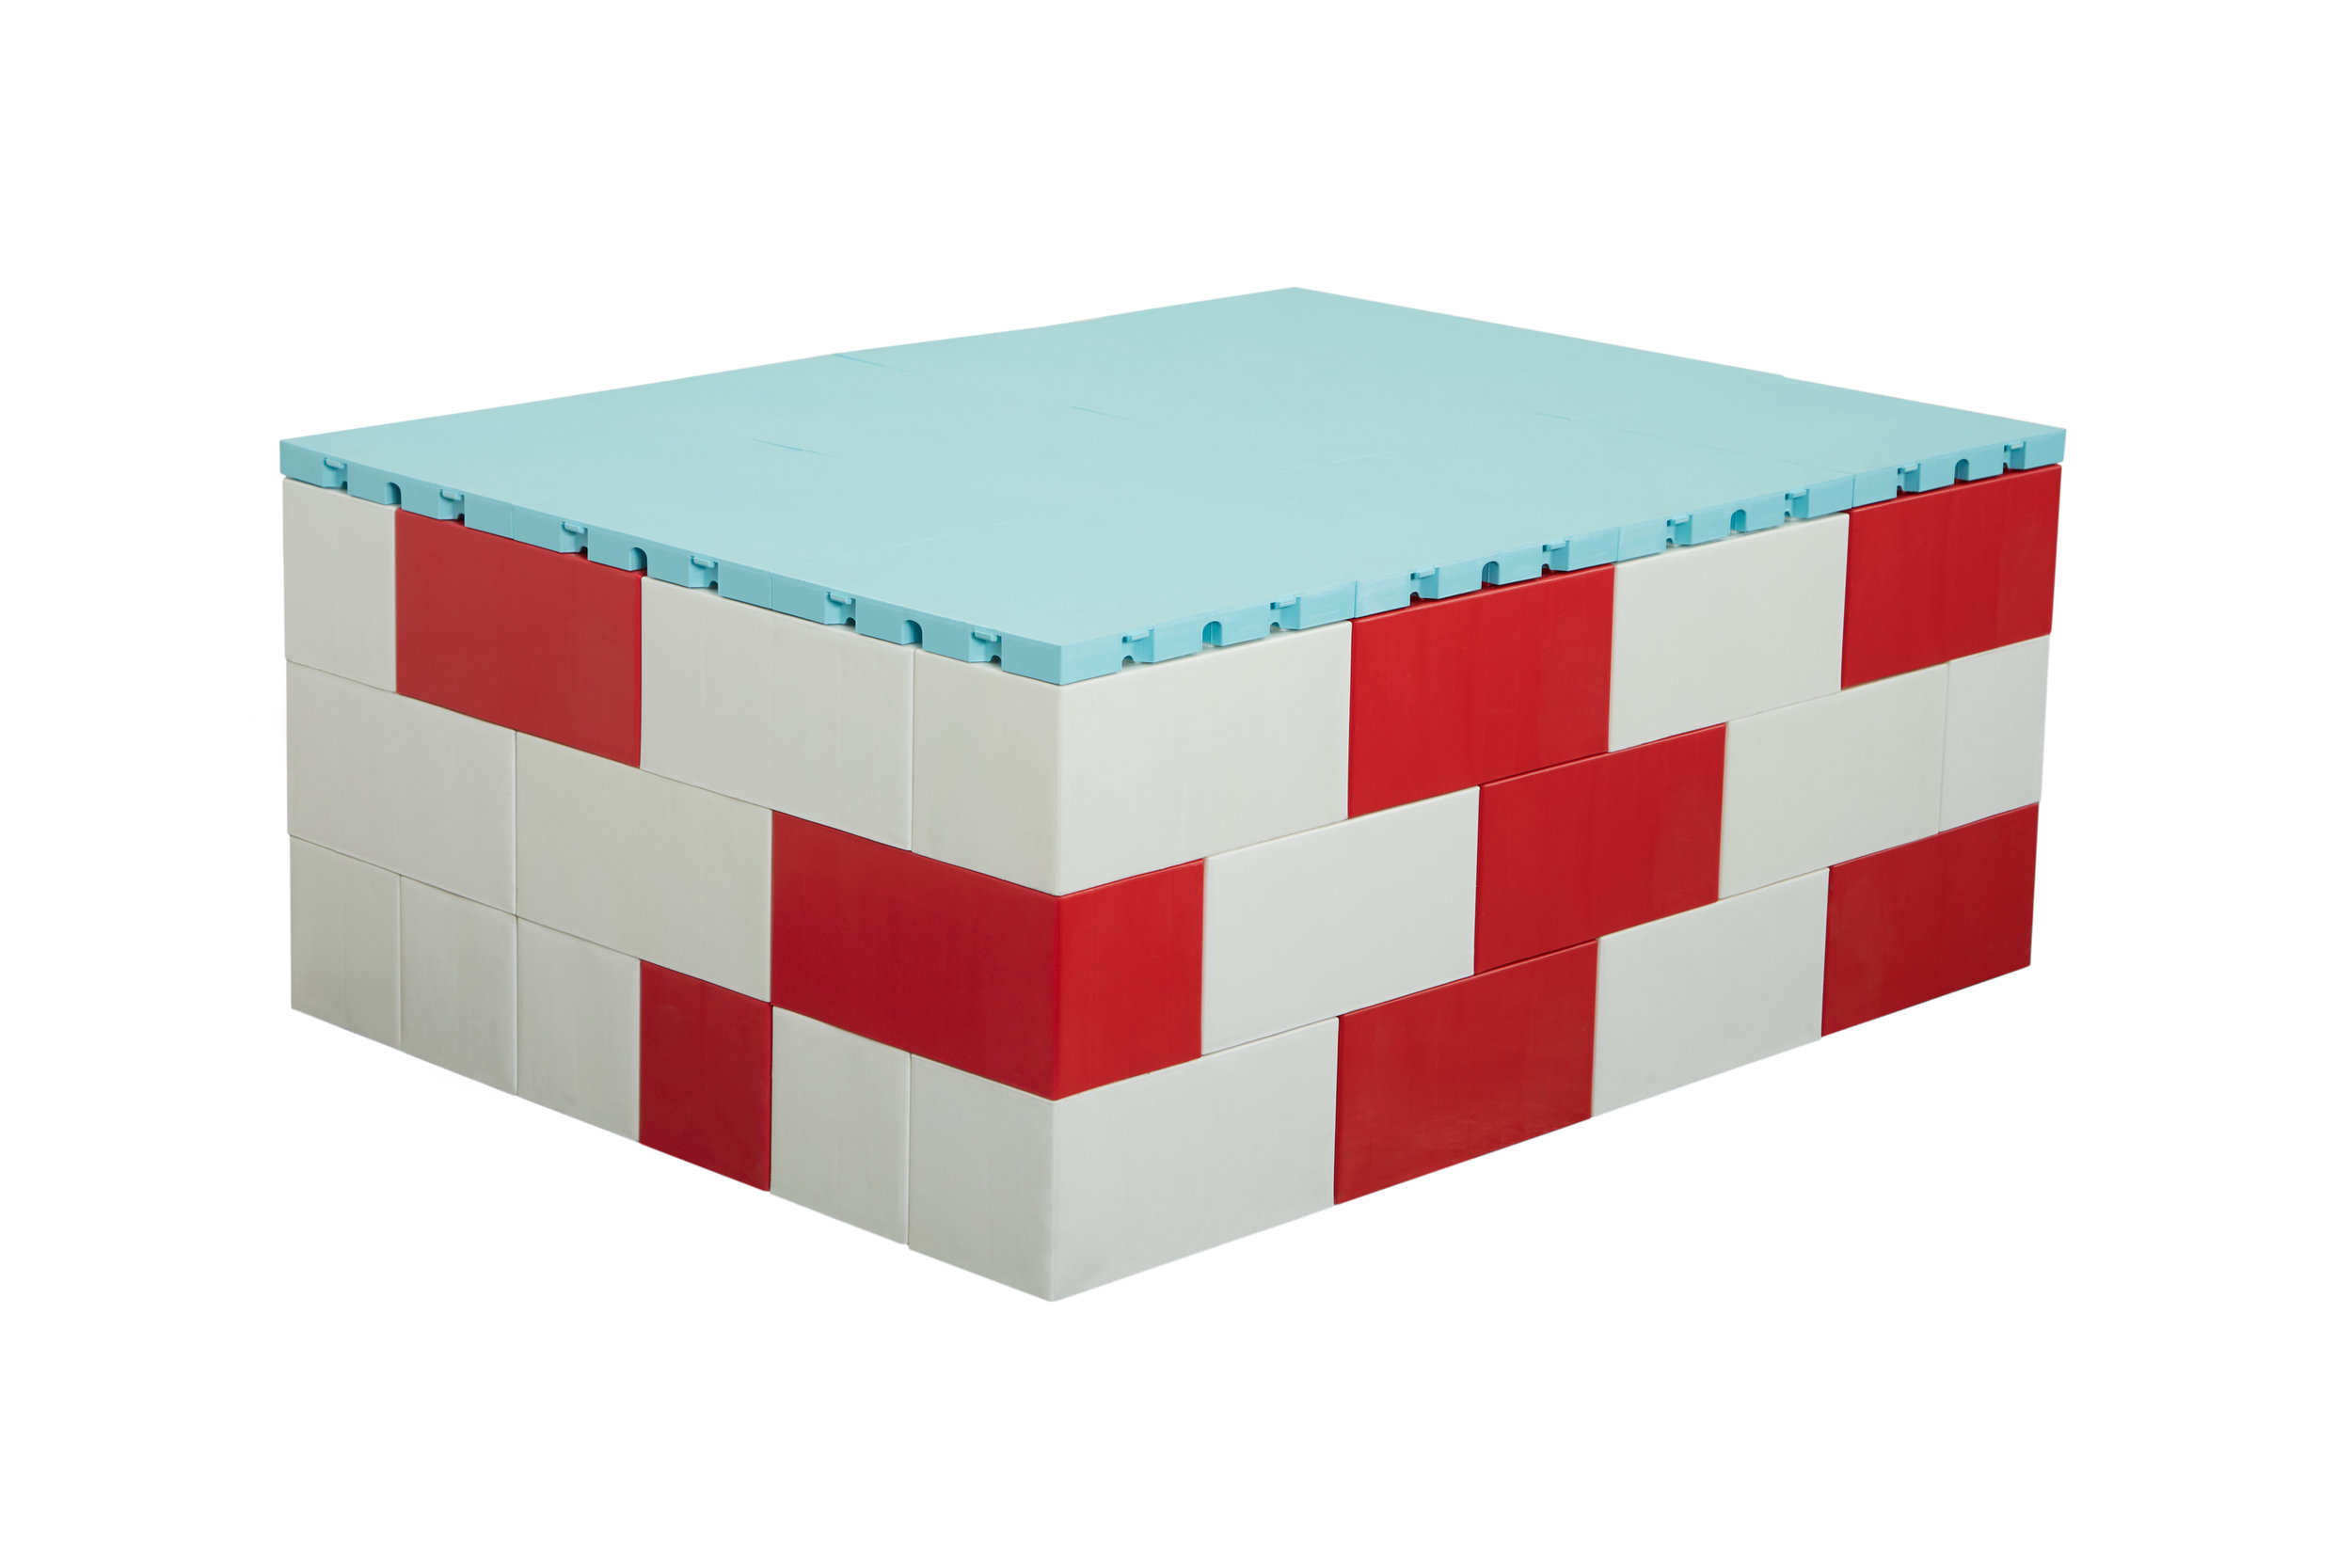 Place flooring on EverBlock blocks to create elevated podiums, platforms, and stages